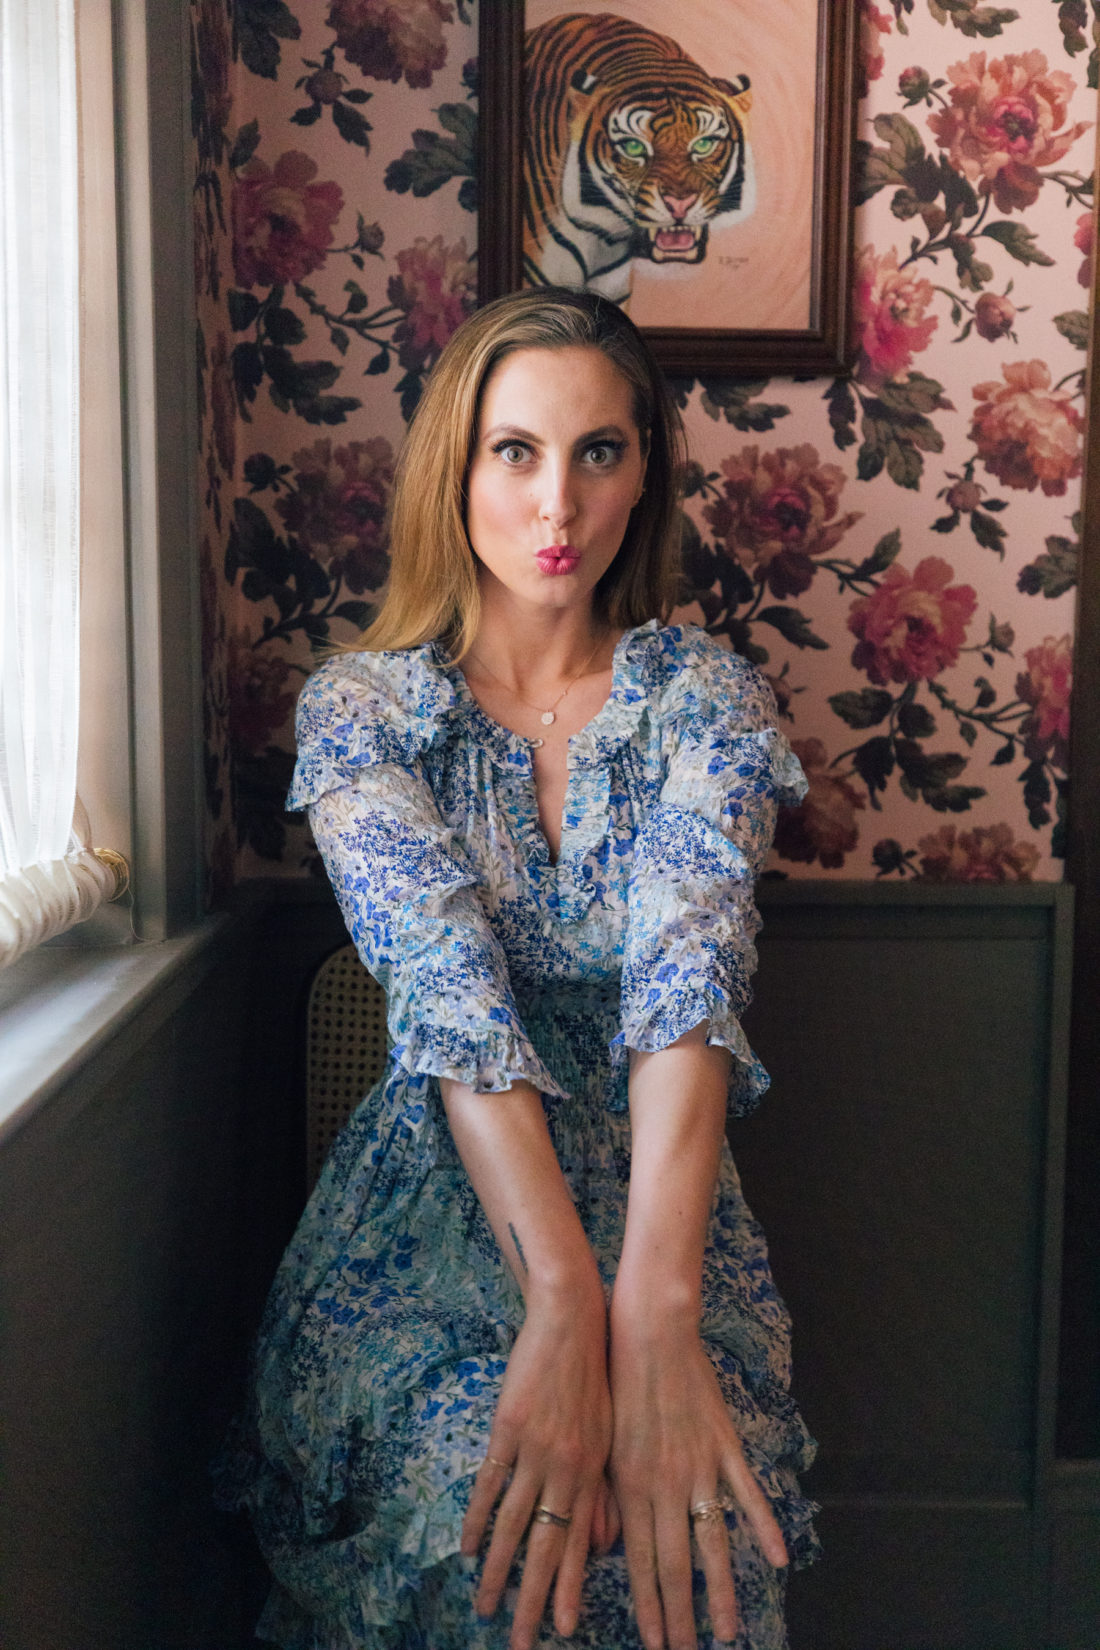 Eva Amurri Martino sits in a floral dress in front of peony wallpaper at the Clermont Hotel